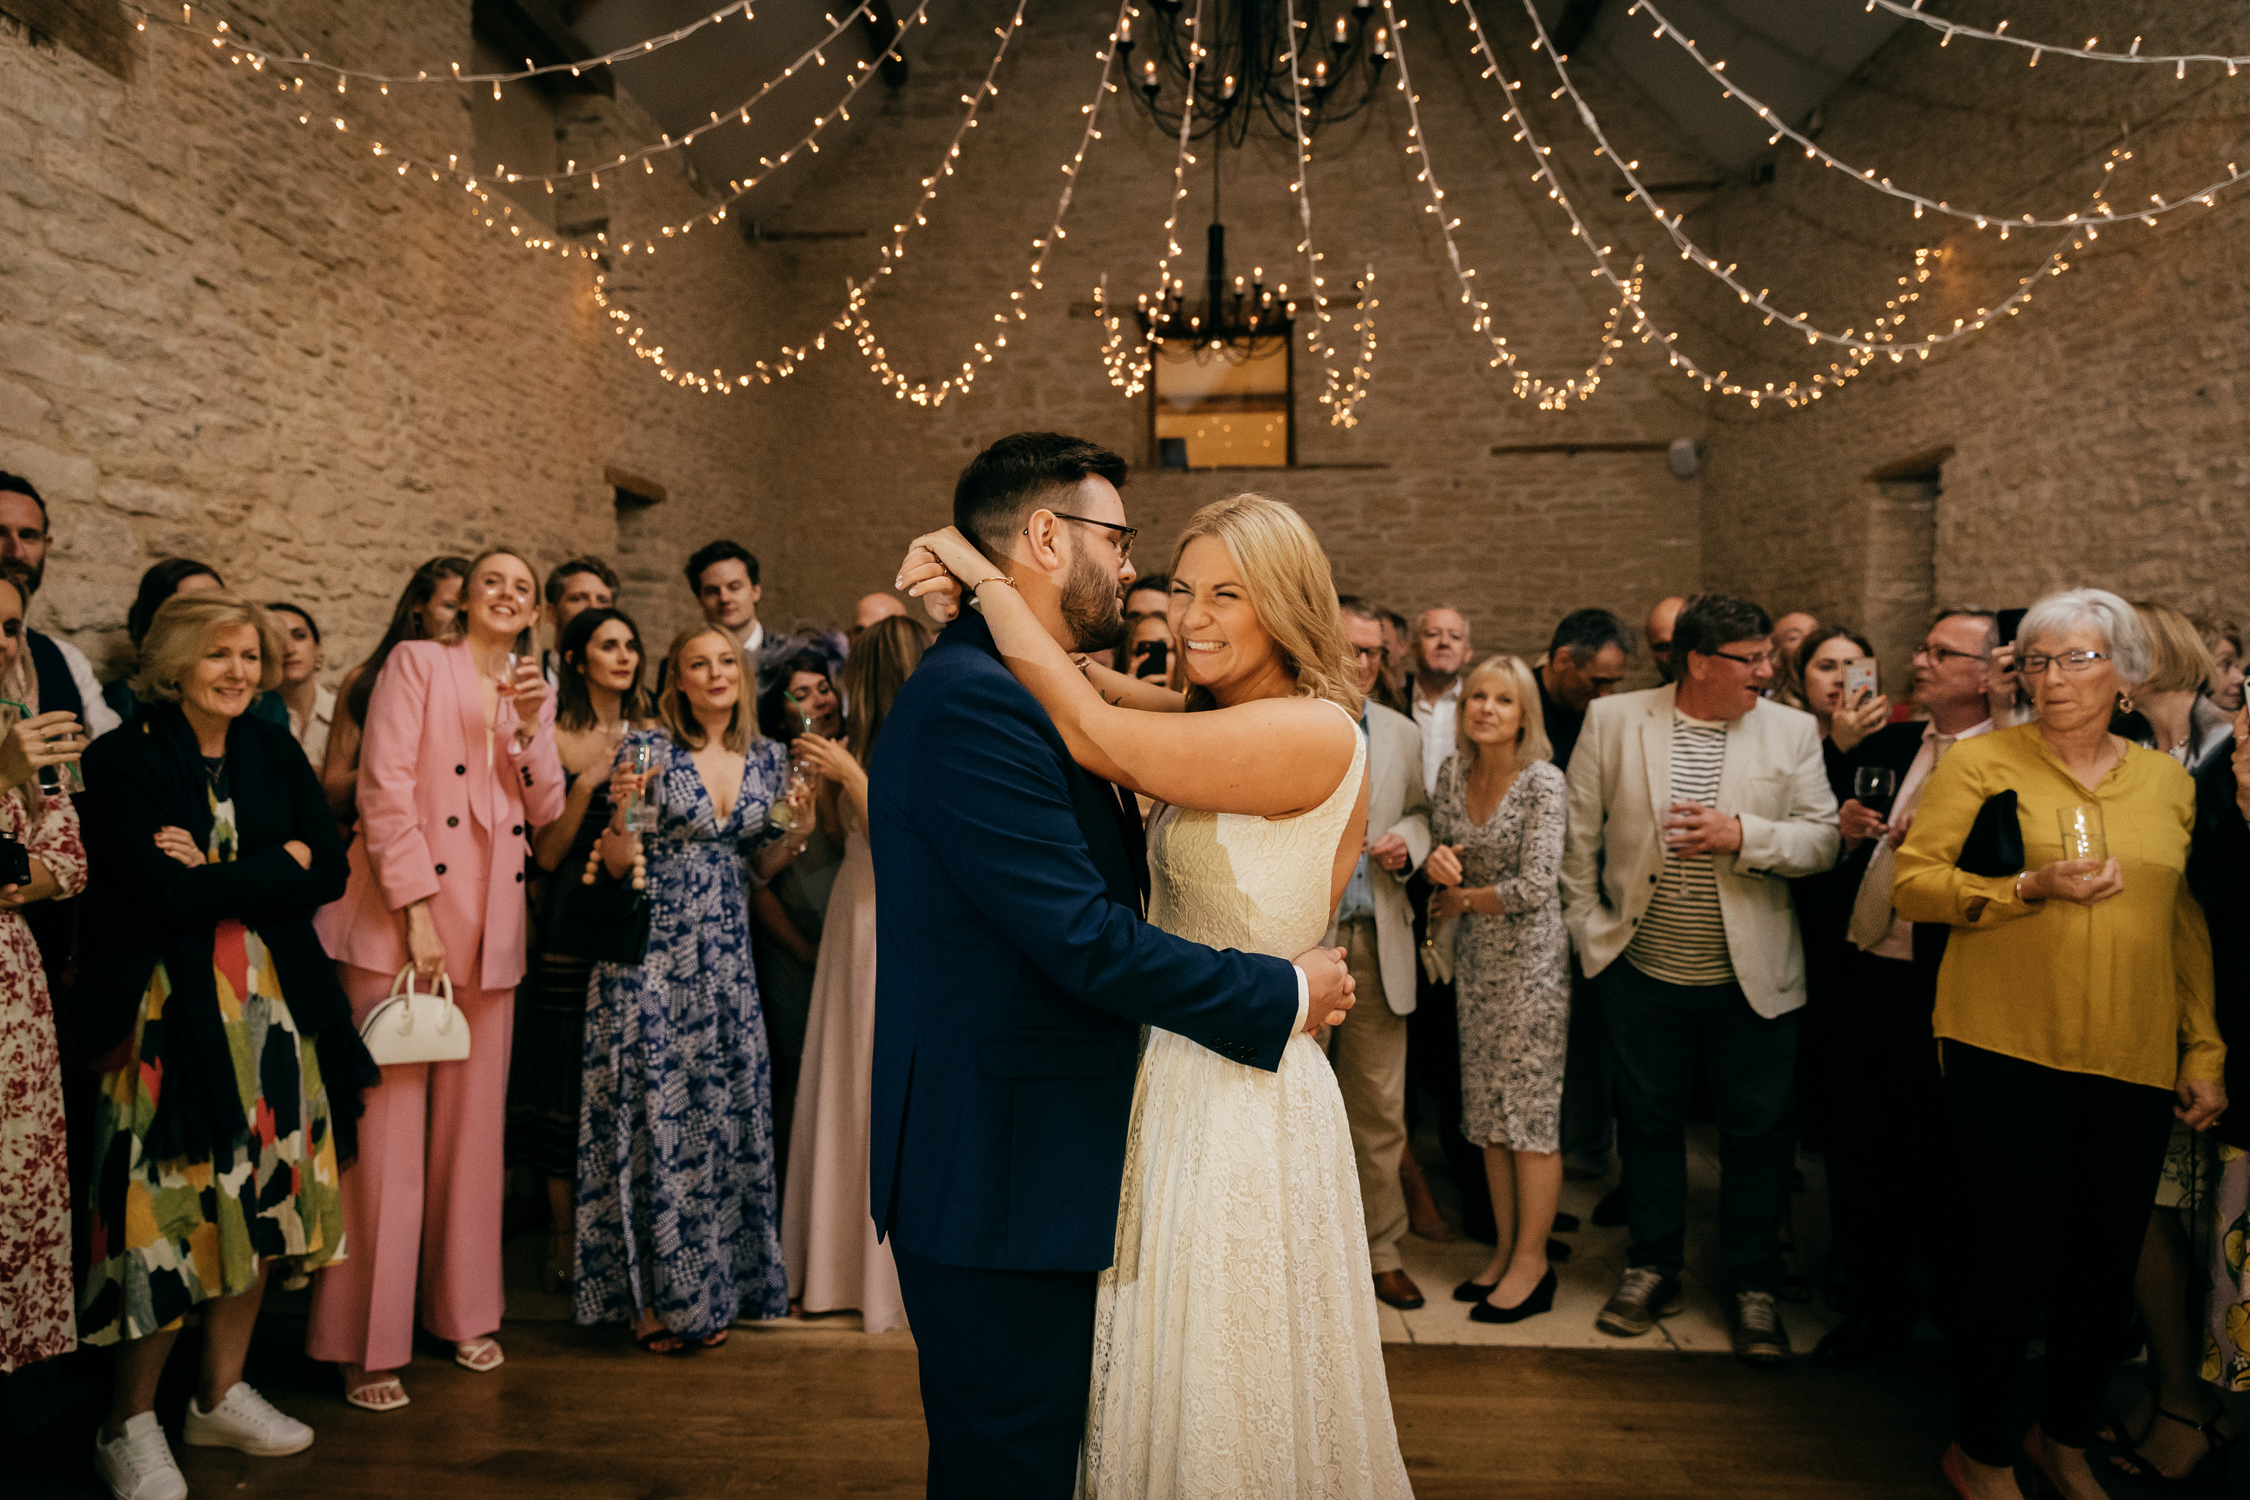 documentary wedding photo of the first dance at kingscote barn wedding